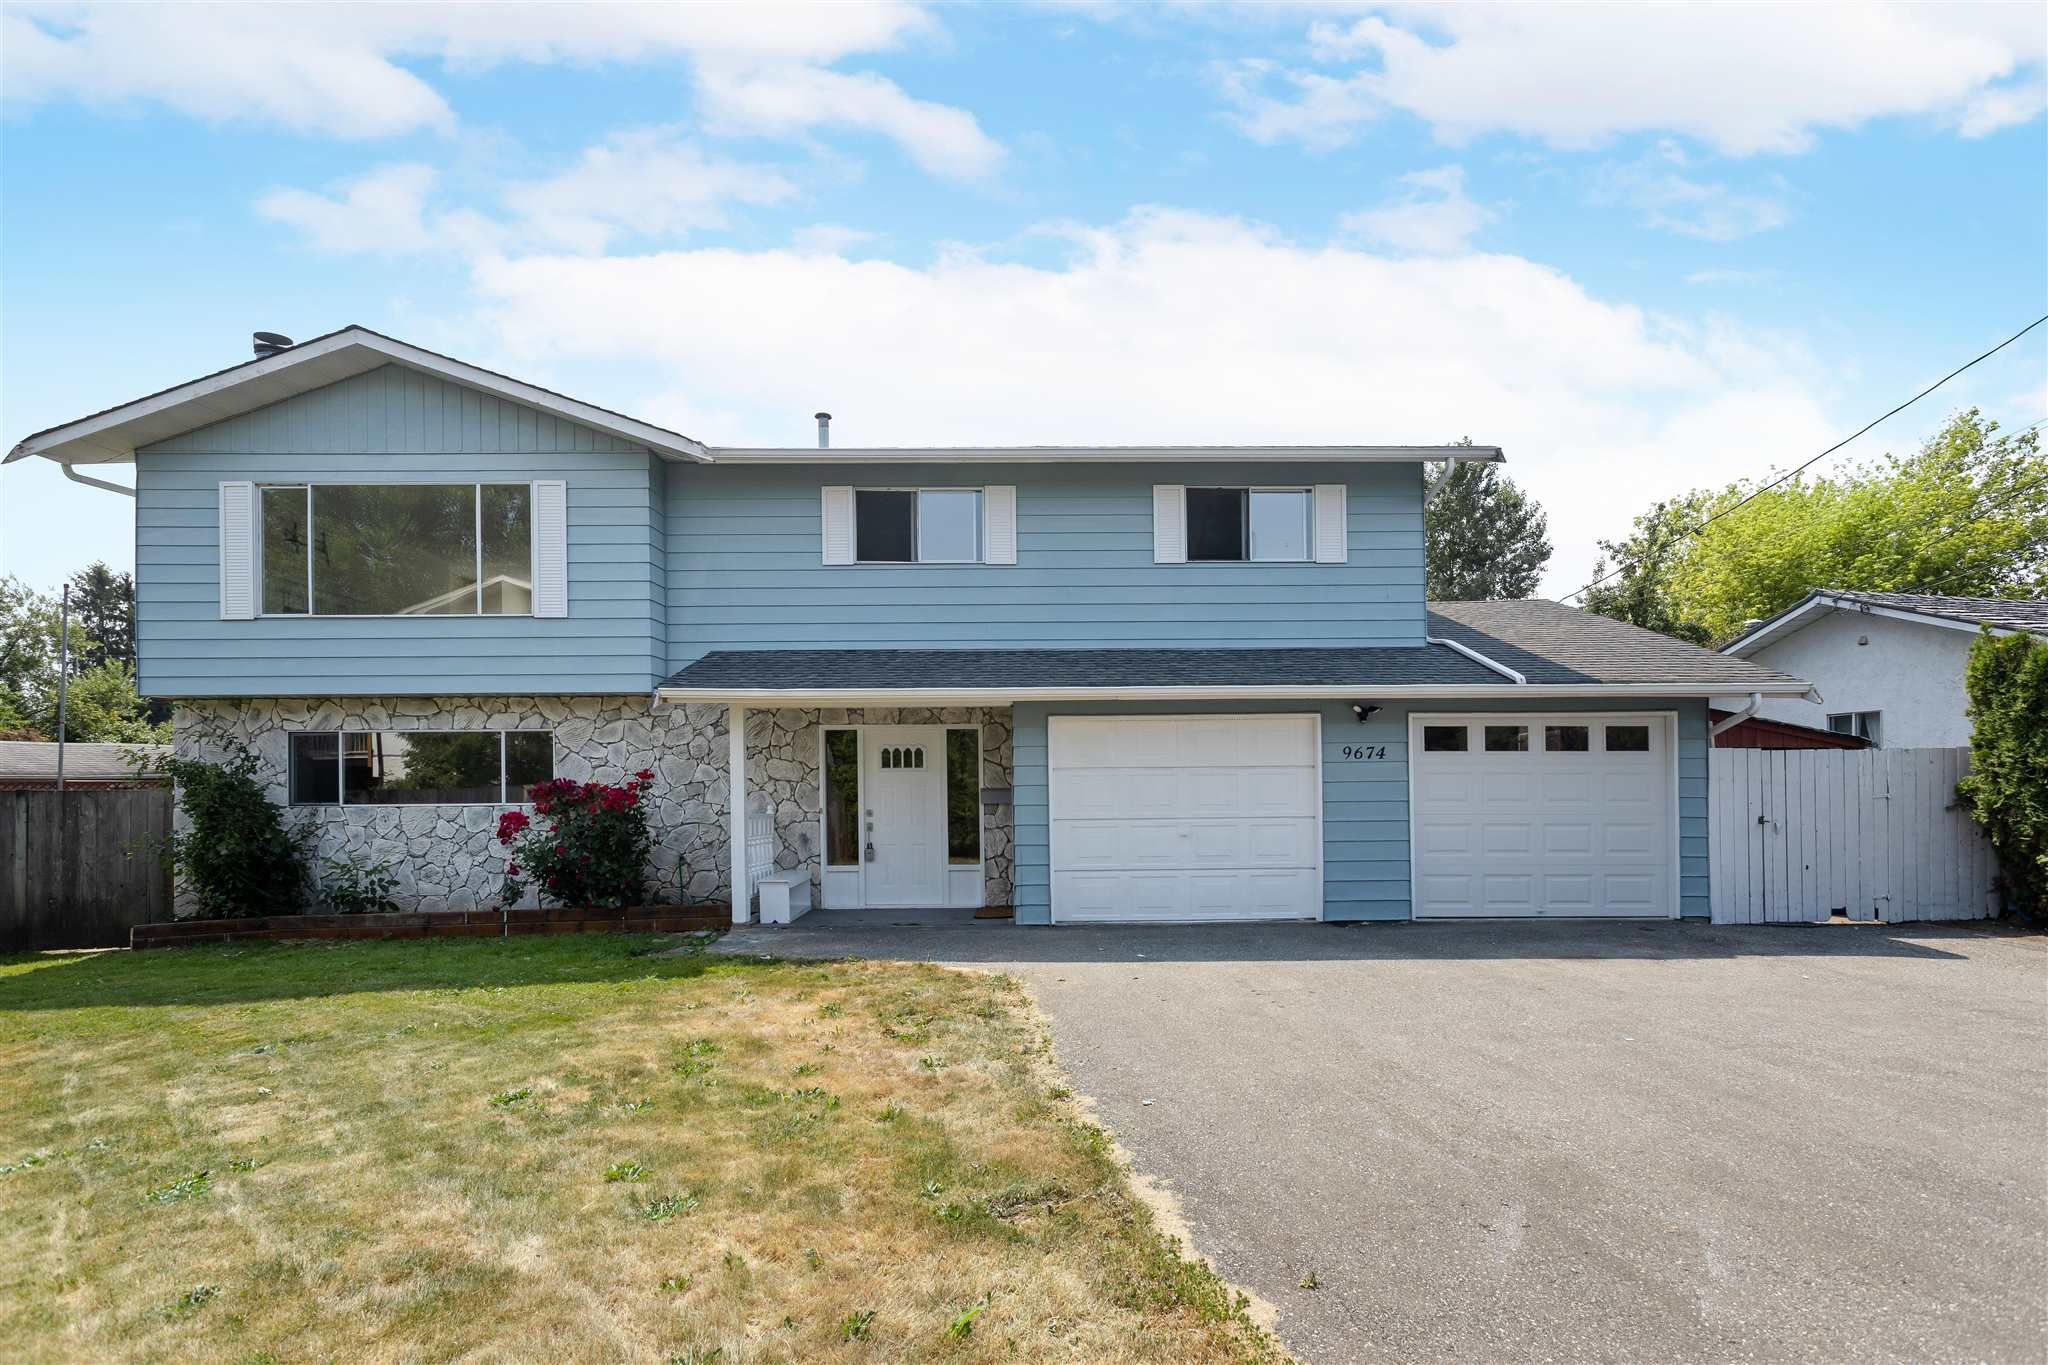 Main Photo: 9674 HILLIER Street in Chilliwack: Chilliwack N Yale-Well House for sale : MLS®# R2597853